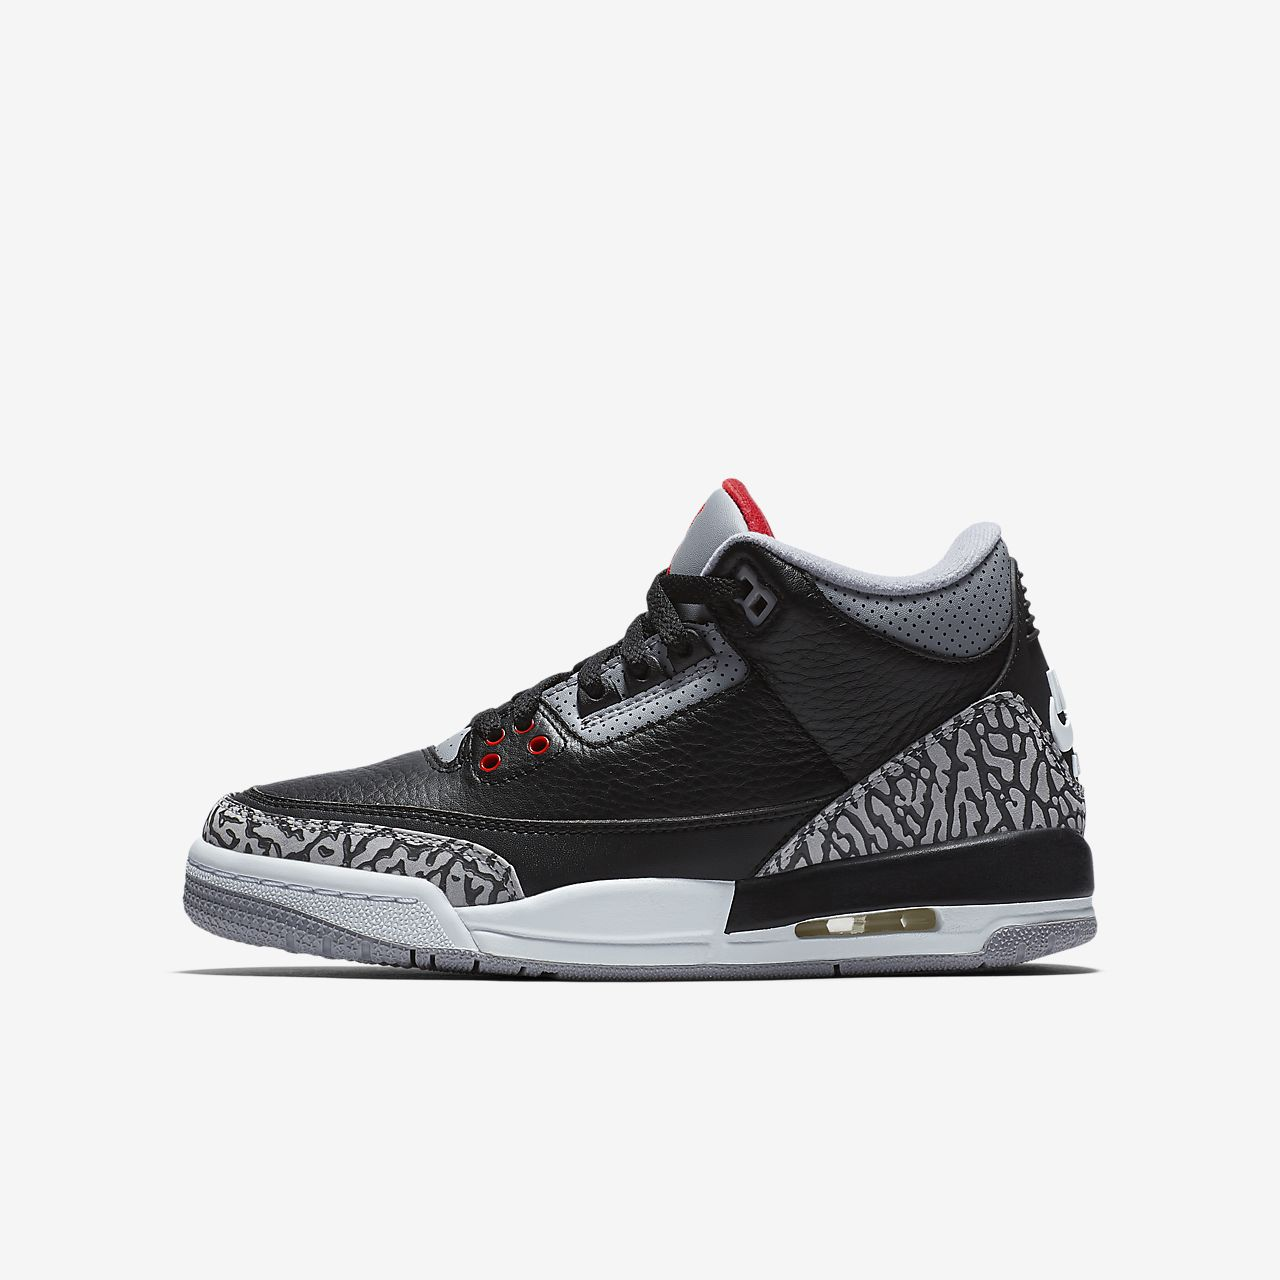 ... Air Jordan 3 Retro OG Older Kids' Shoe